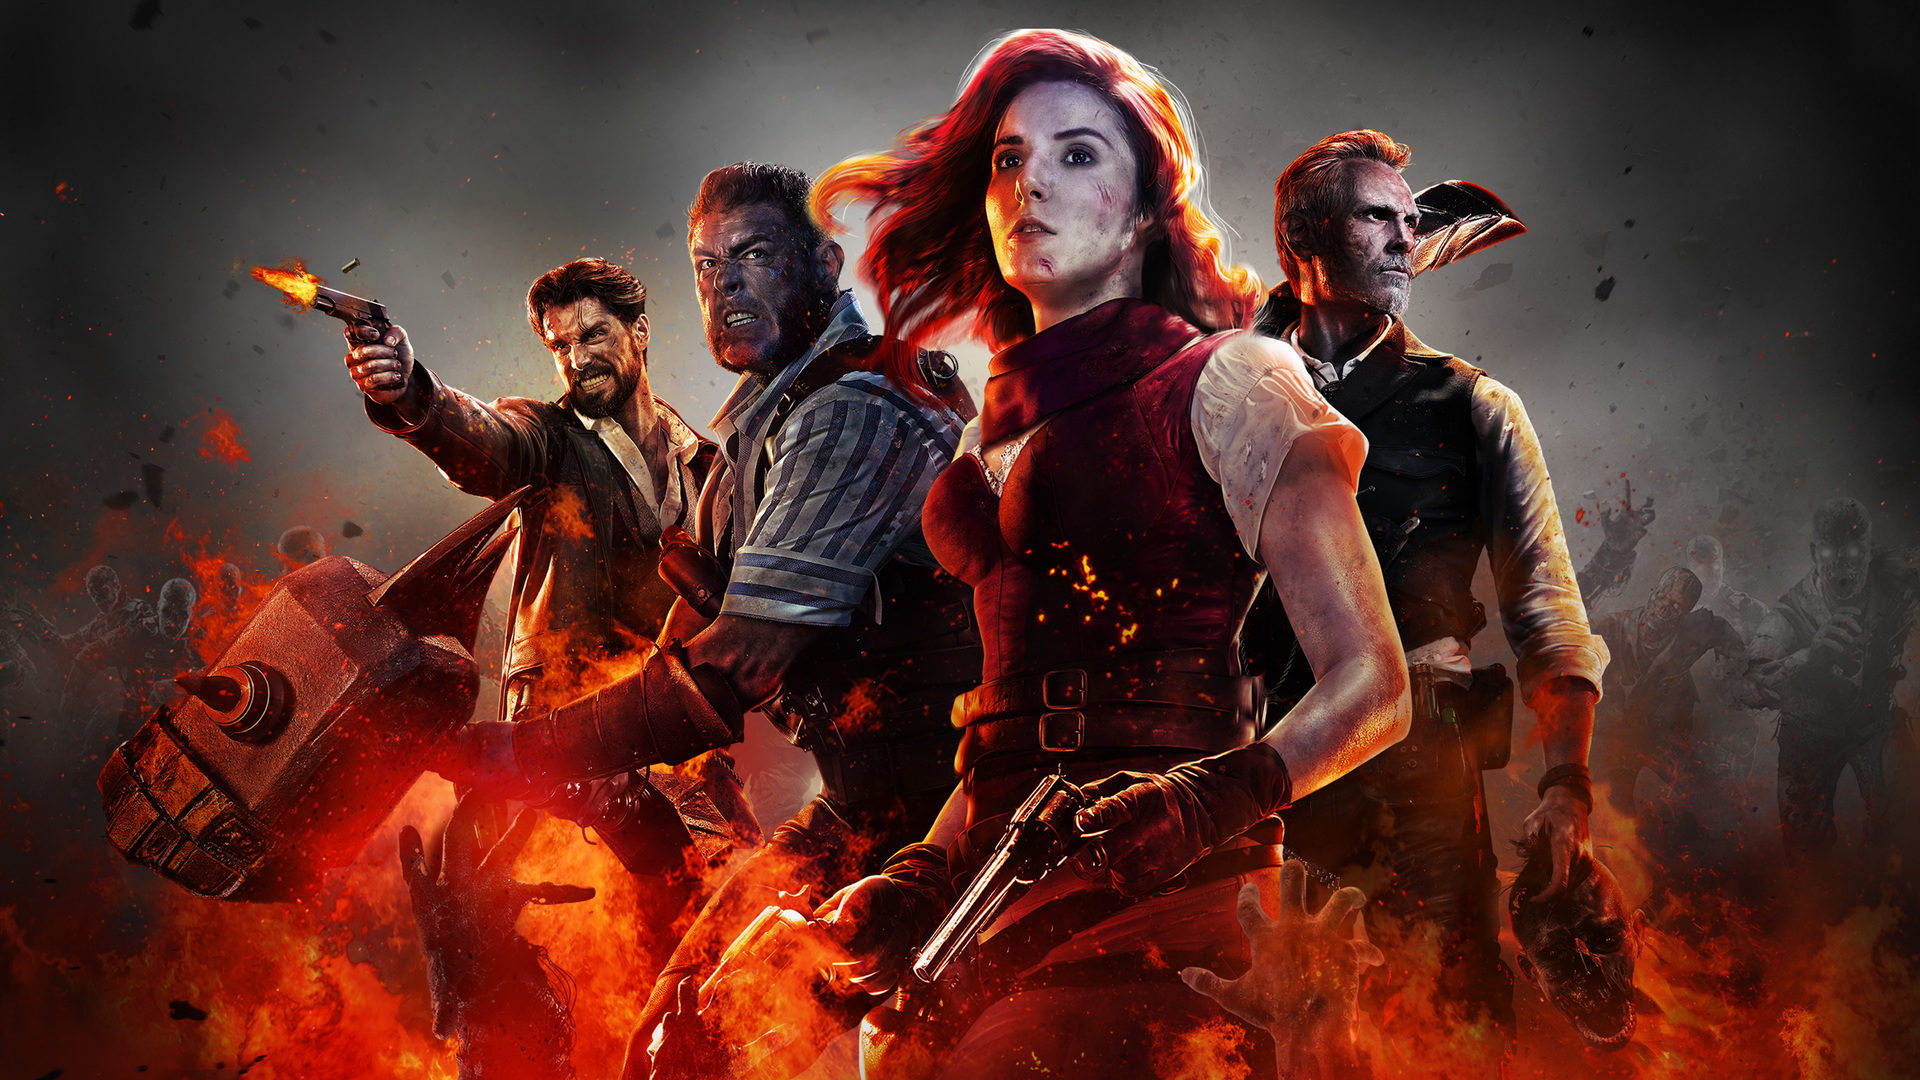 Call Of Duty Black Ops 4 Wallpapers: Call Of Duty Black Ops 4 Zombies Desktop Wallpaper